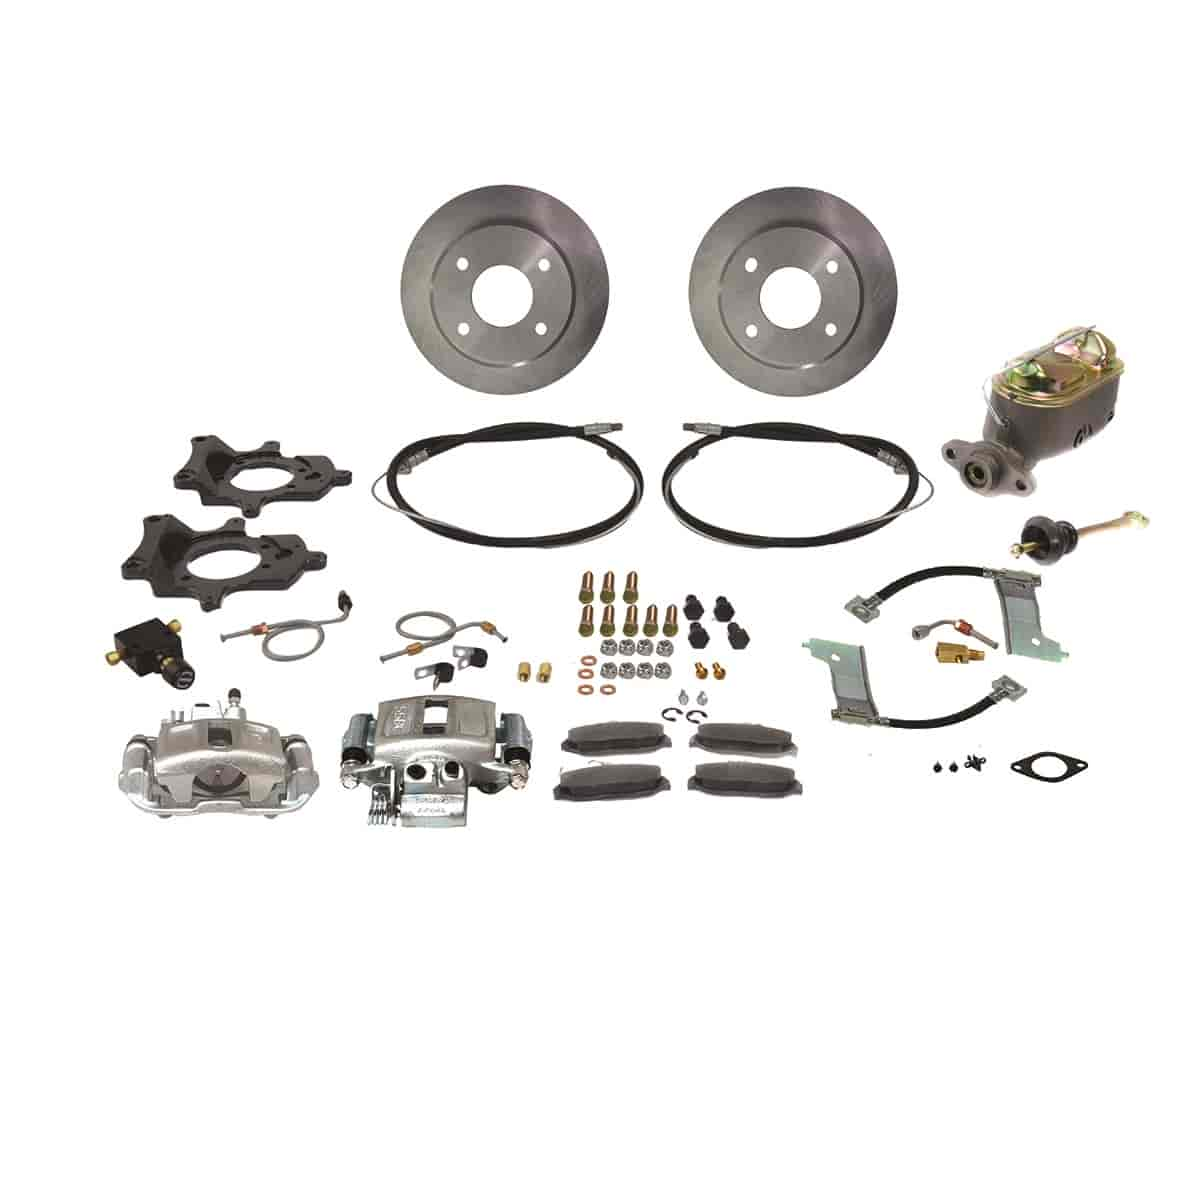 Stainless Steel Brakes A112-1 - Stainless Steel Brakes Single Piston Rear Drum to Disc Brake Conversion Kits